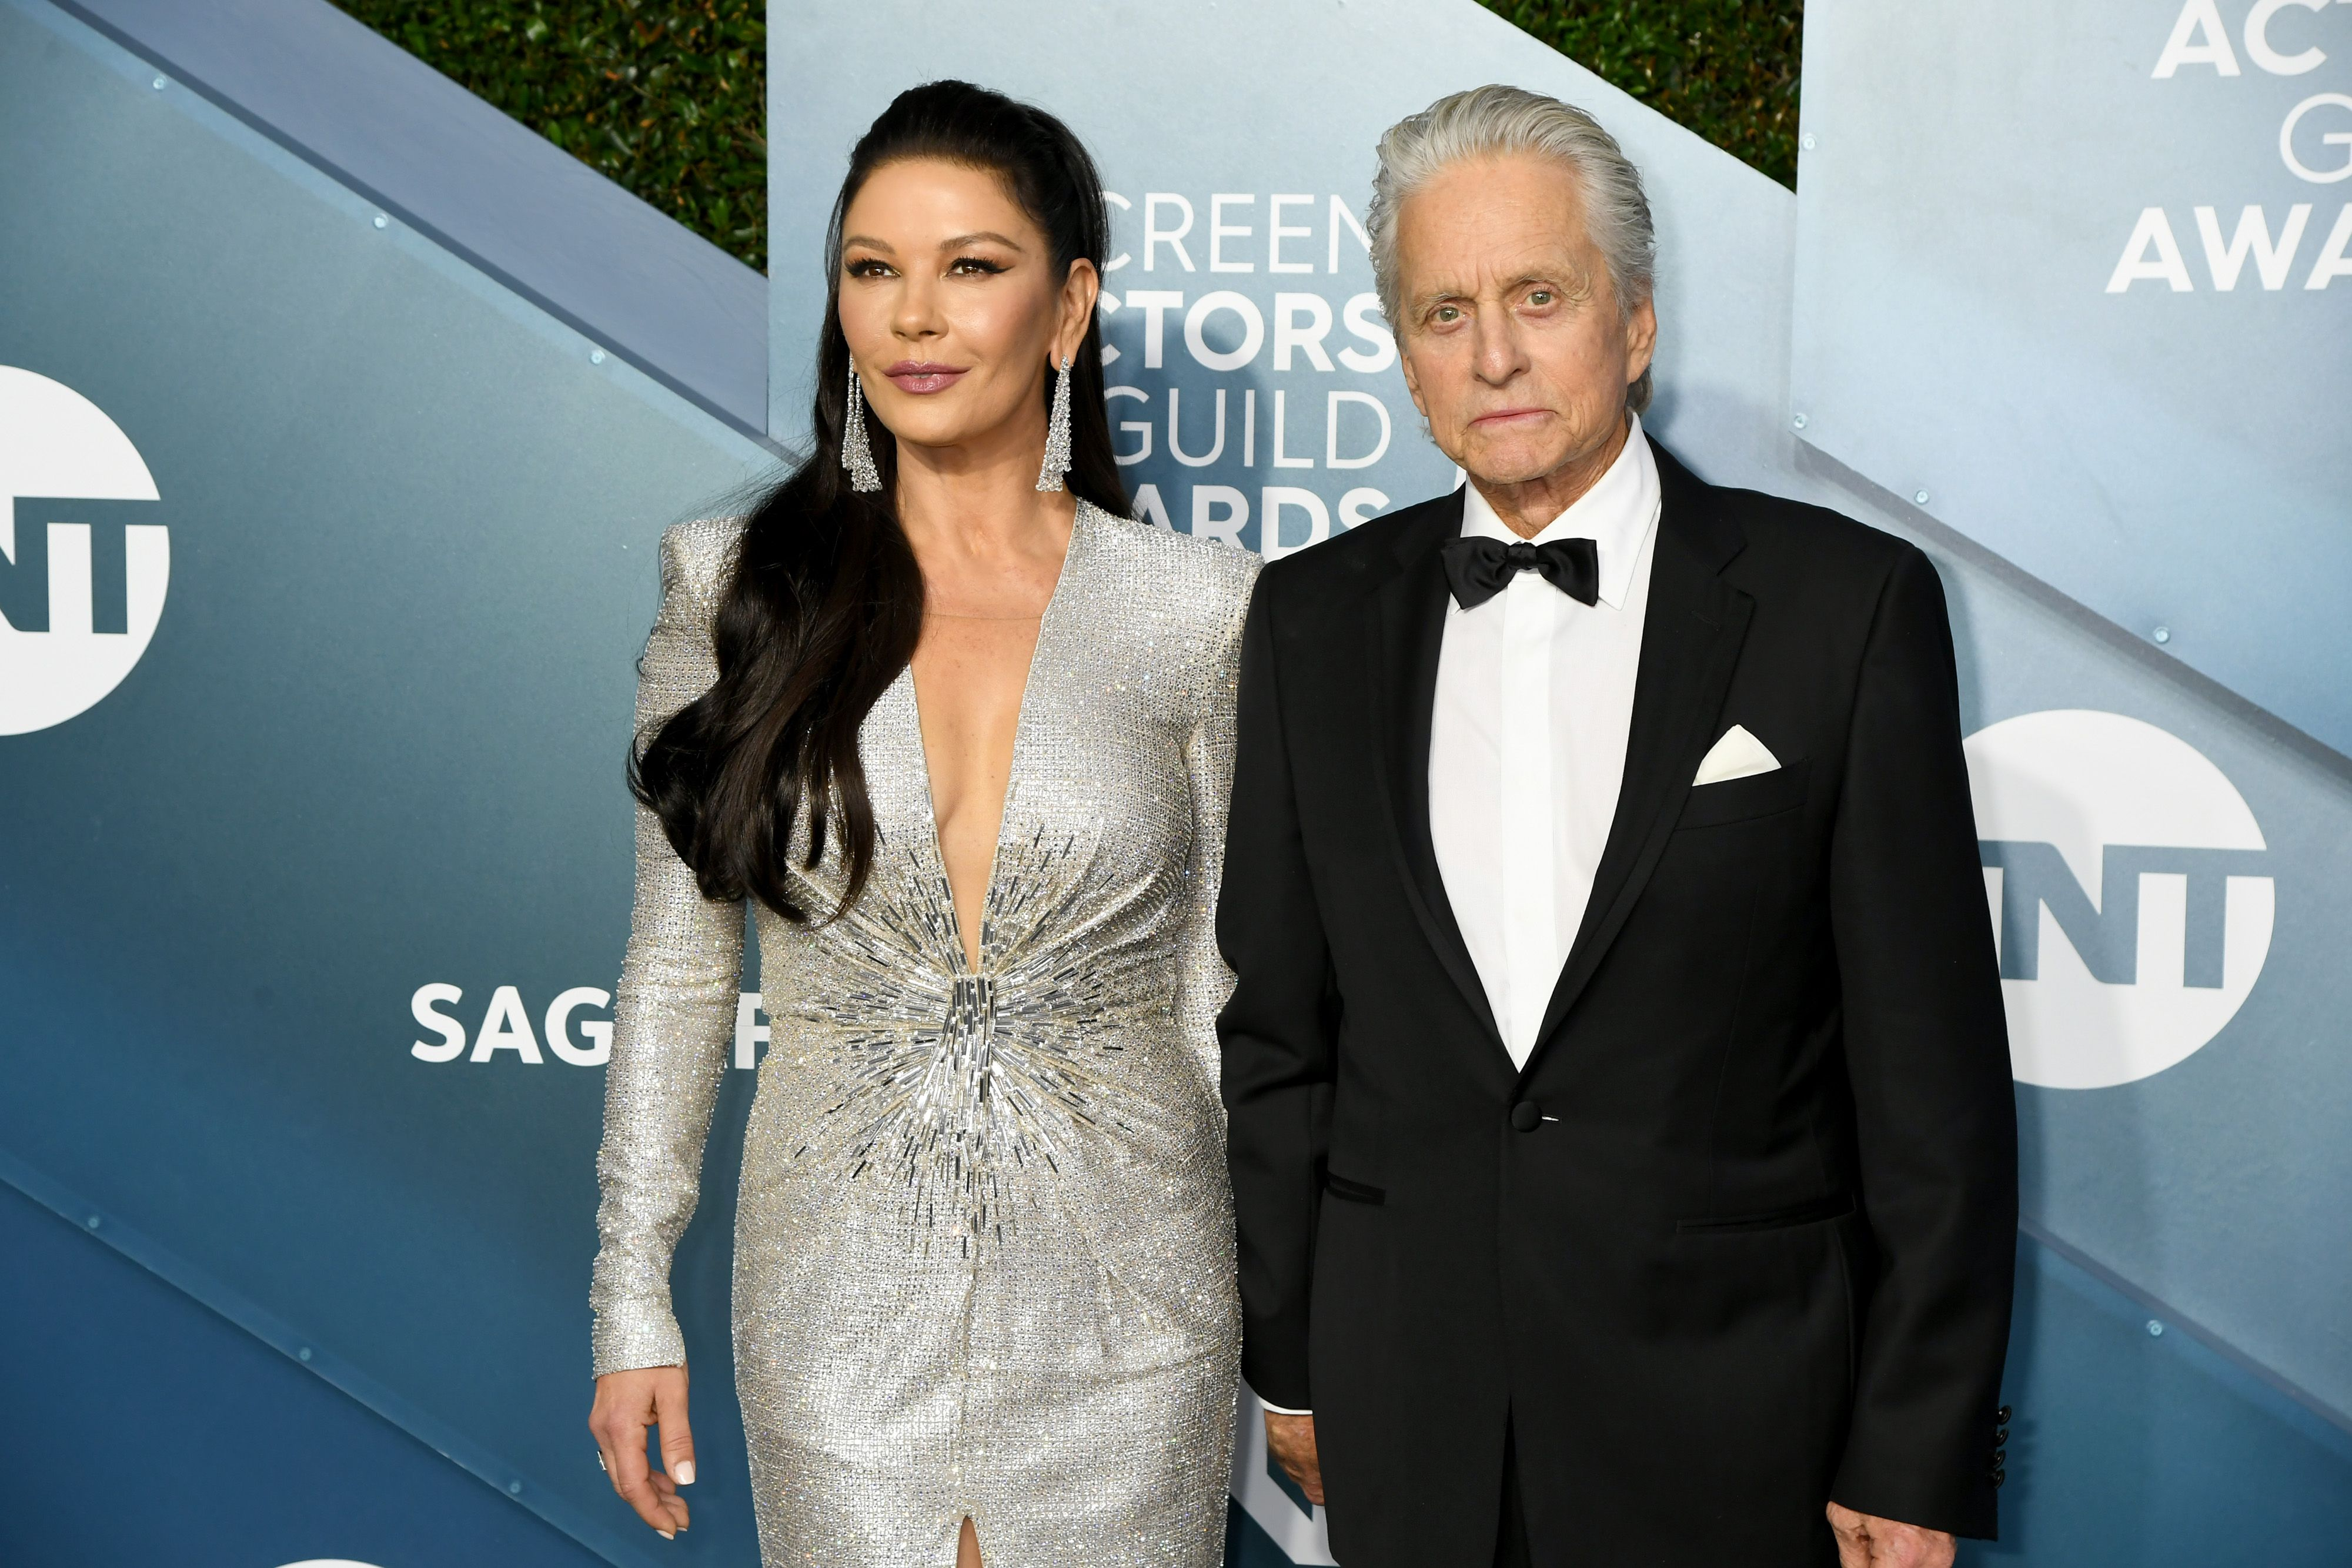 Catherine Zeta-Jones and Michael Douglas at the 26th Annual Screen ActorsGuild Awards at The Shrine Auditorium on January 19, 2020 | Photo: Getty Images